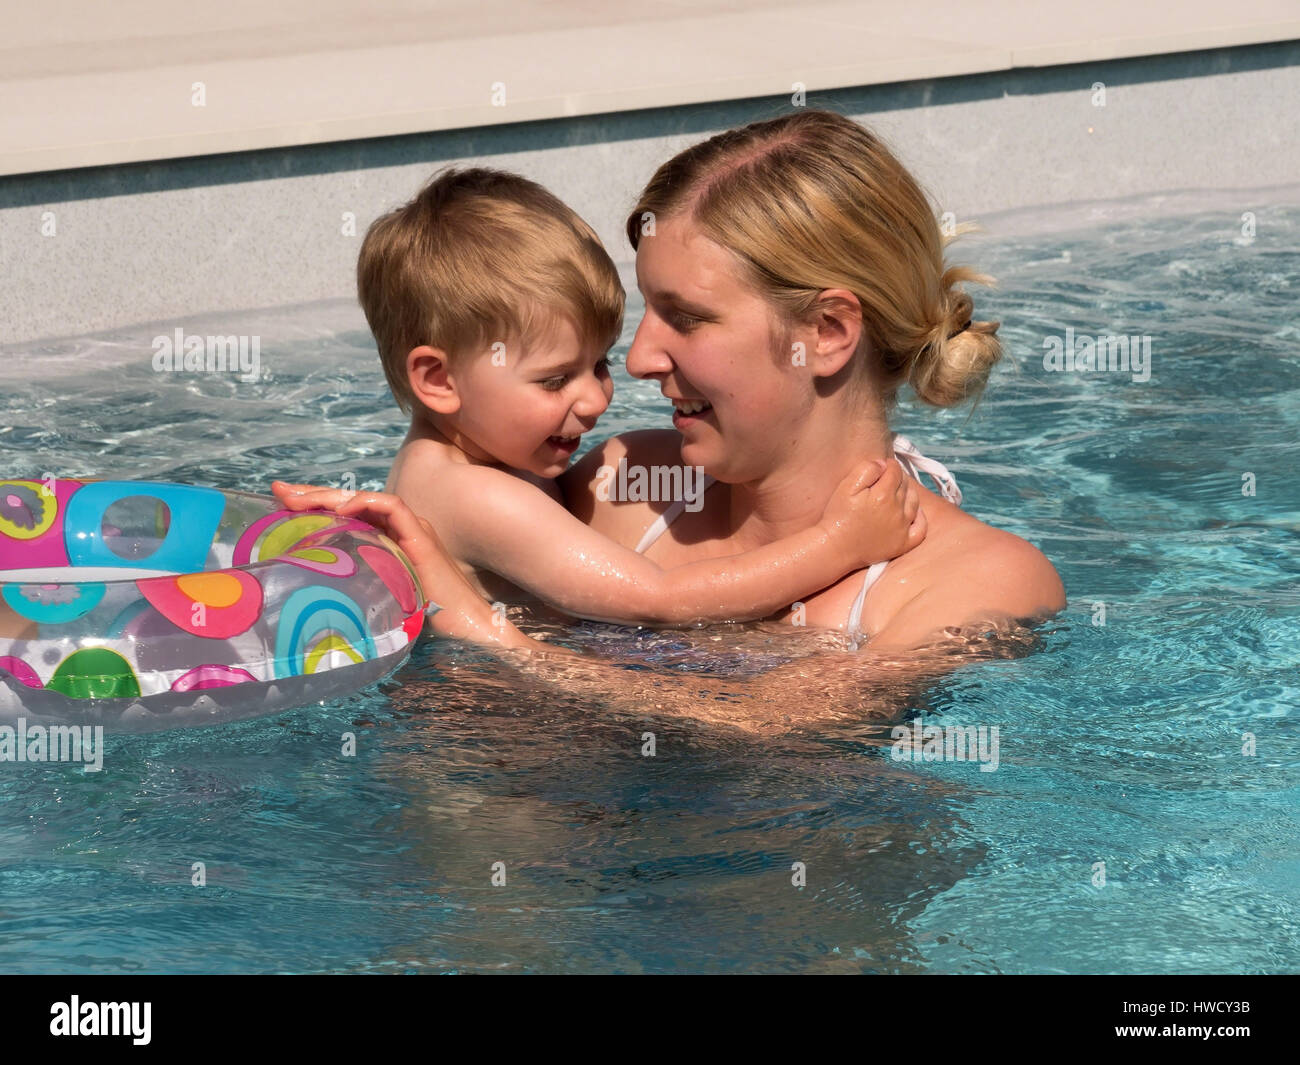 A child swims with a Schwimmreifwn in the pool and cools off on a hot summer day., Ein Kind schwimmt mit einem Schwimmreifwn Stock Photo